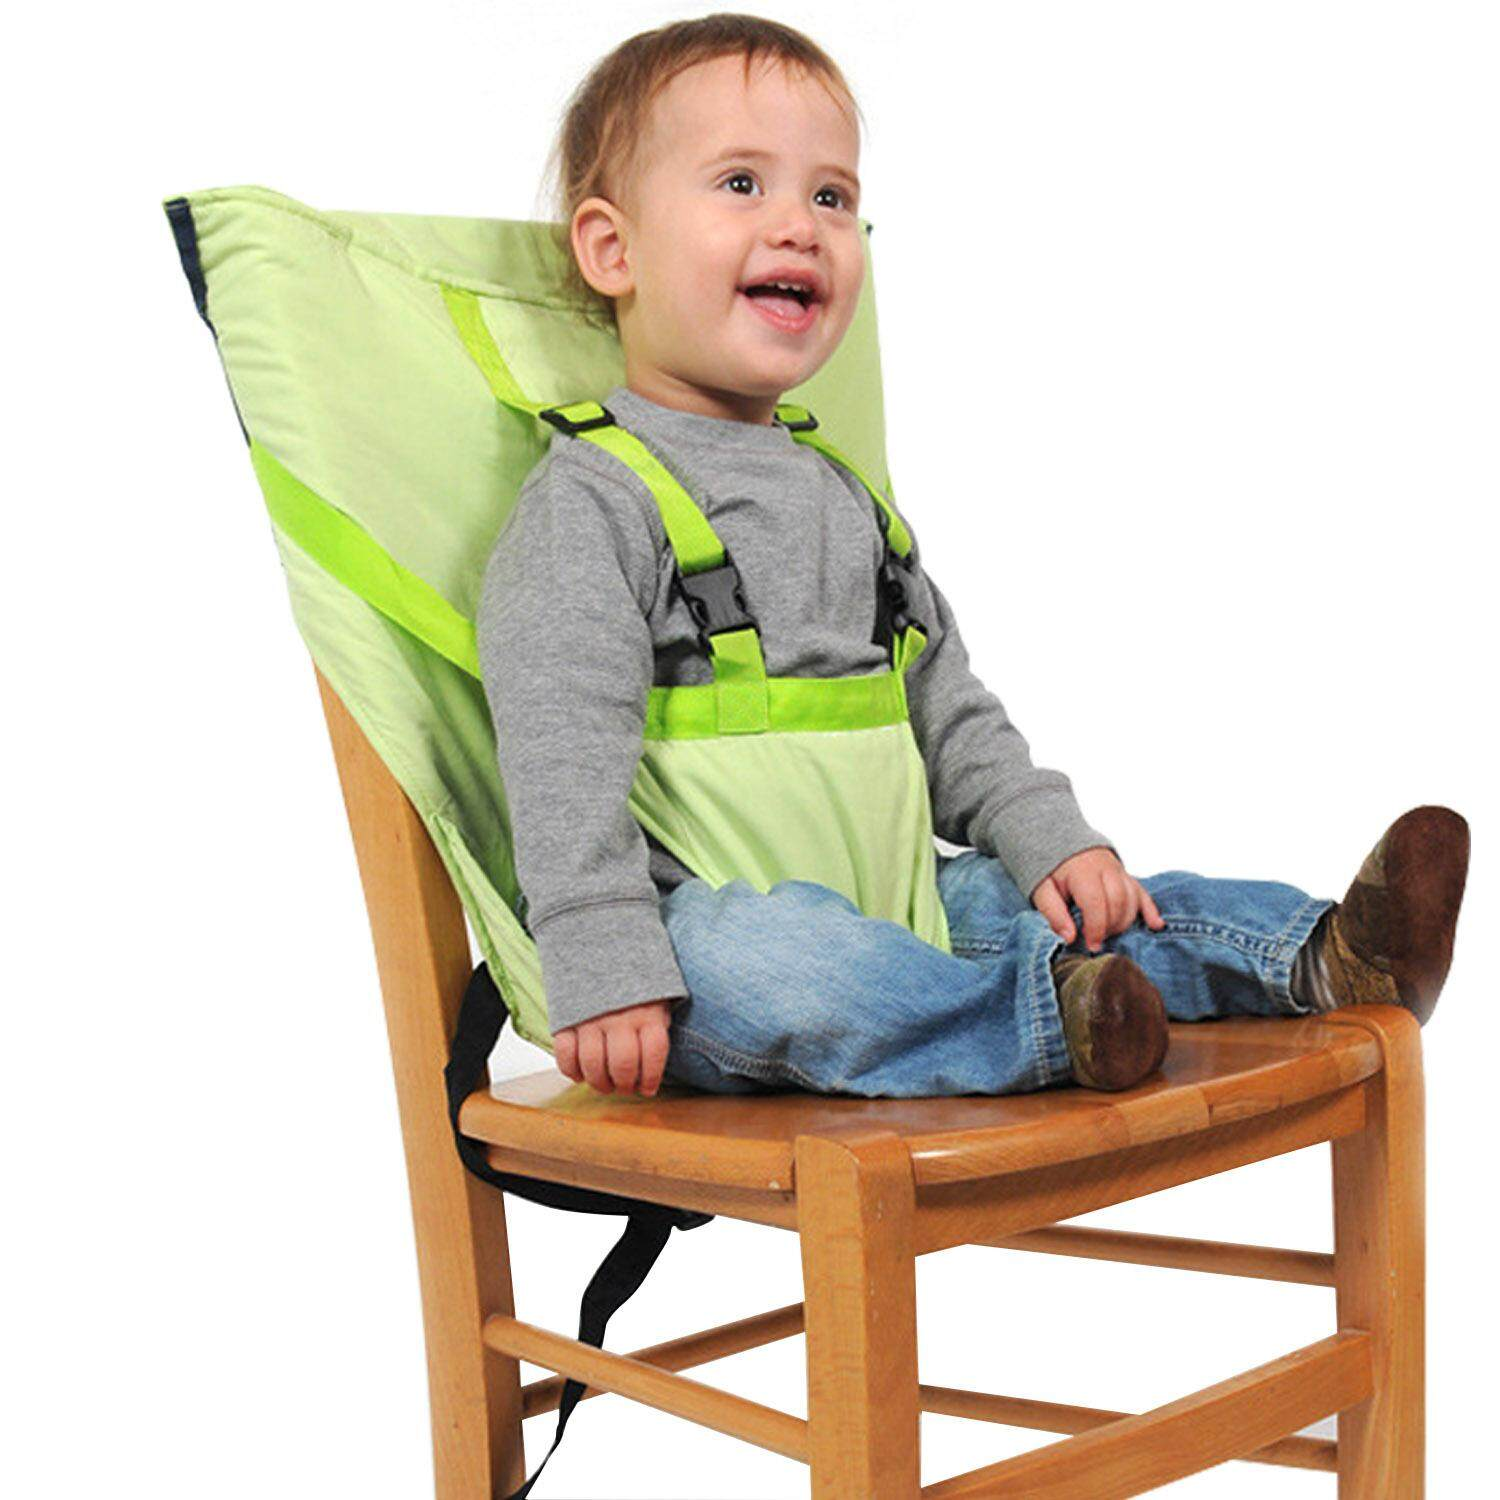 Booster High Chair Seat Portable Travel Baby Infant High Chair Booster Safety Seat Belt Harness Cover With Adjustable Shoulder Straps For Baby Kids Toddlers Feeding Green By